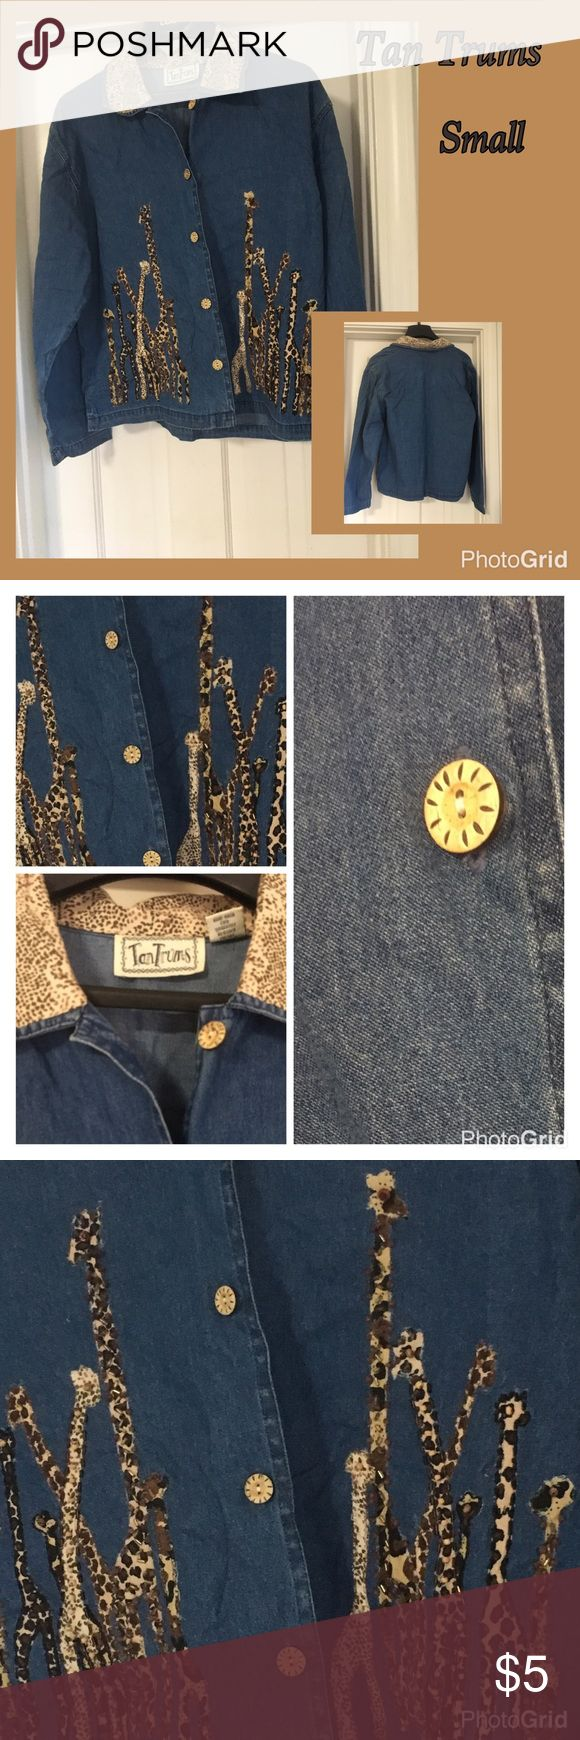 Jacket by Tan Trums Beautifully 100% cotton with giraffe print collar and buttons, giraffe bead designs, light weight size small Tan Trums Jackets & Coats Jean Jackets